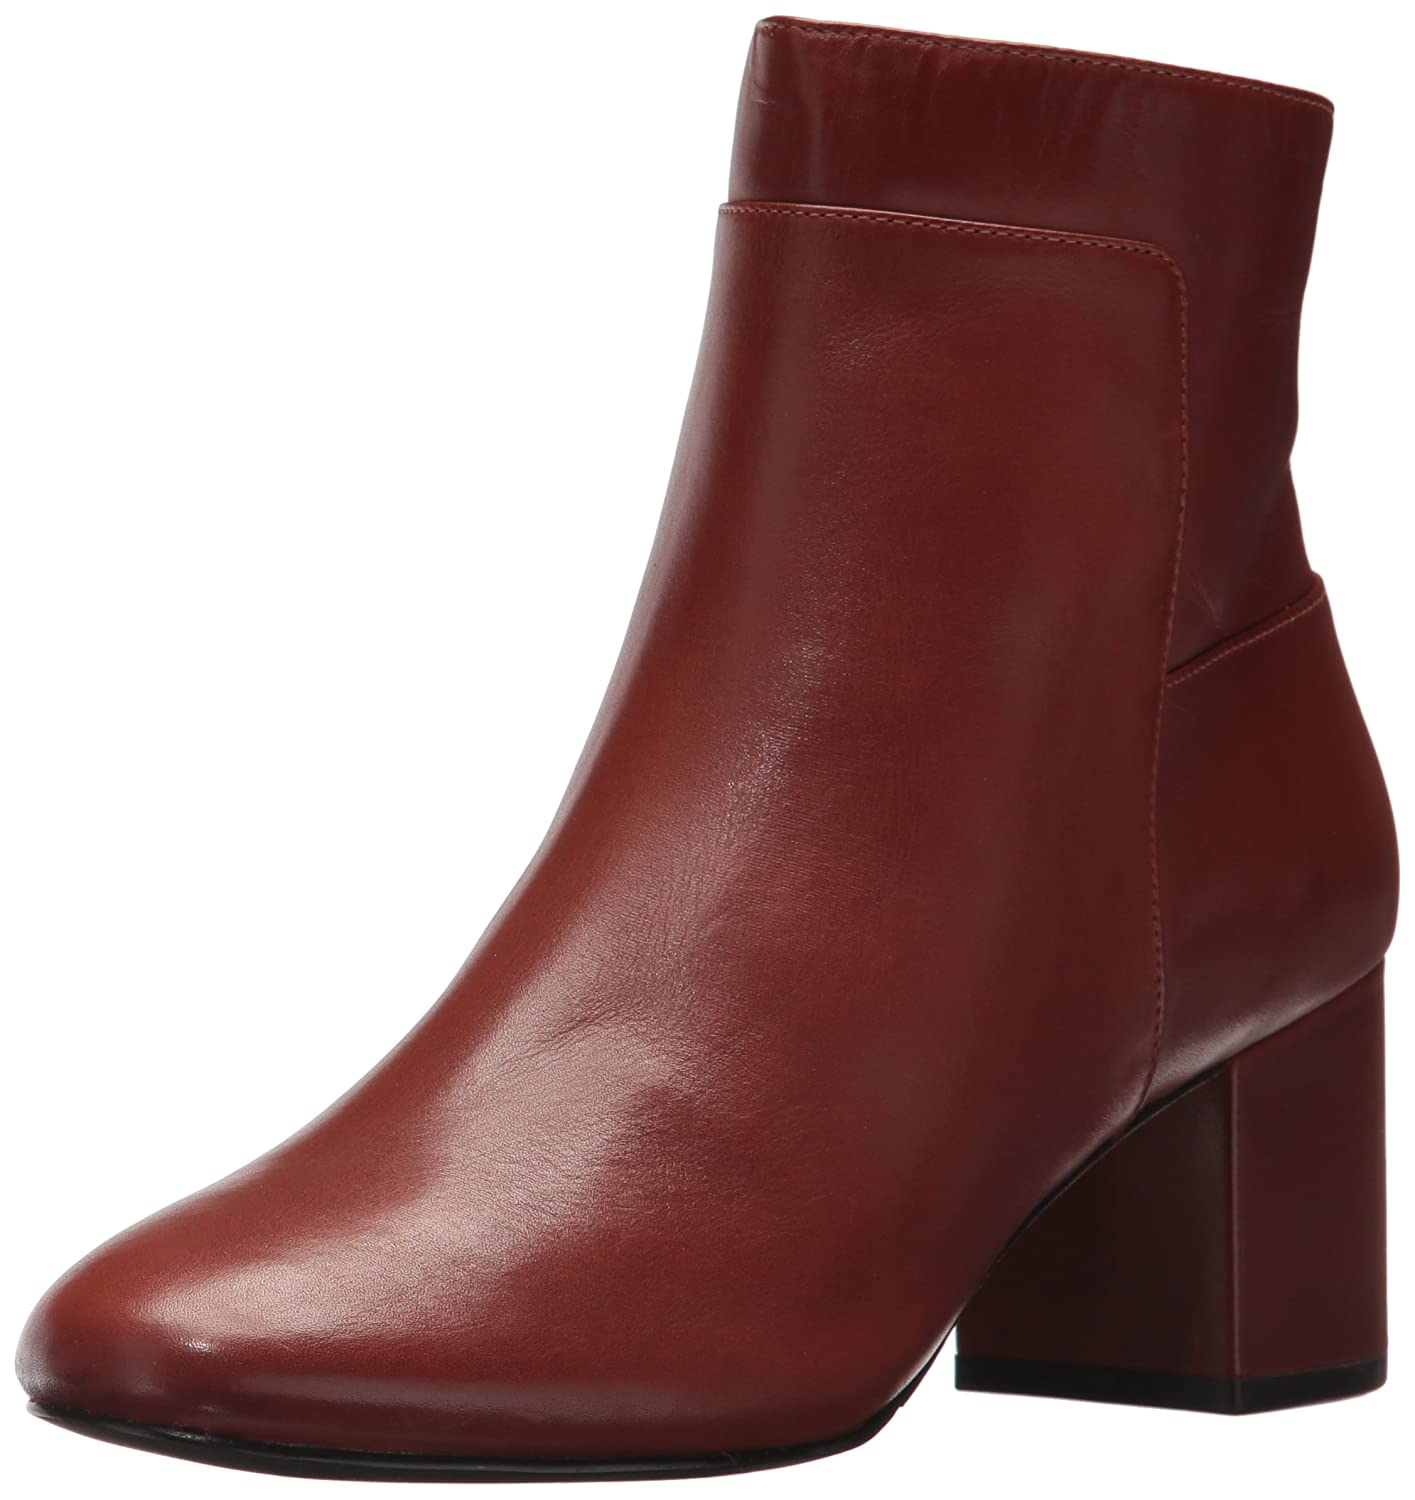 Cole Haan Women's Arden Grand Bootie Ankle Boot B01N6UD25K 7.5 B(M) US|Brandy Brown